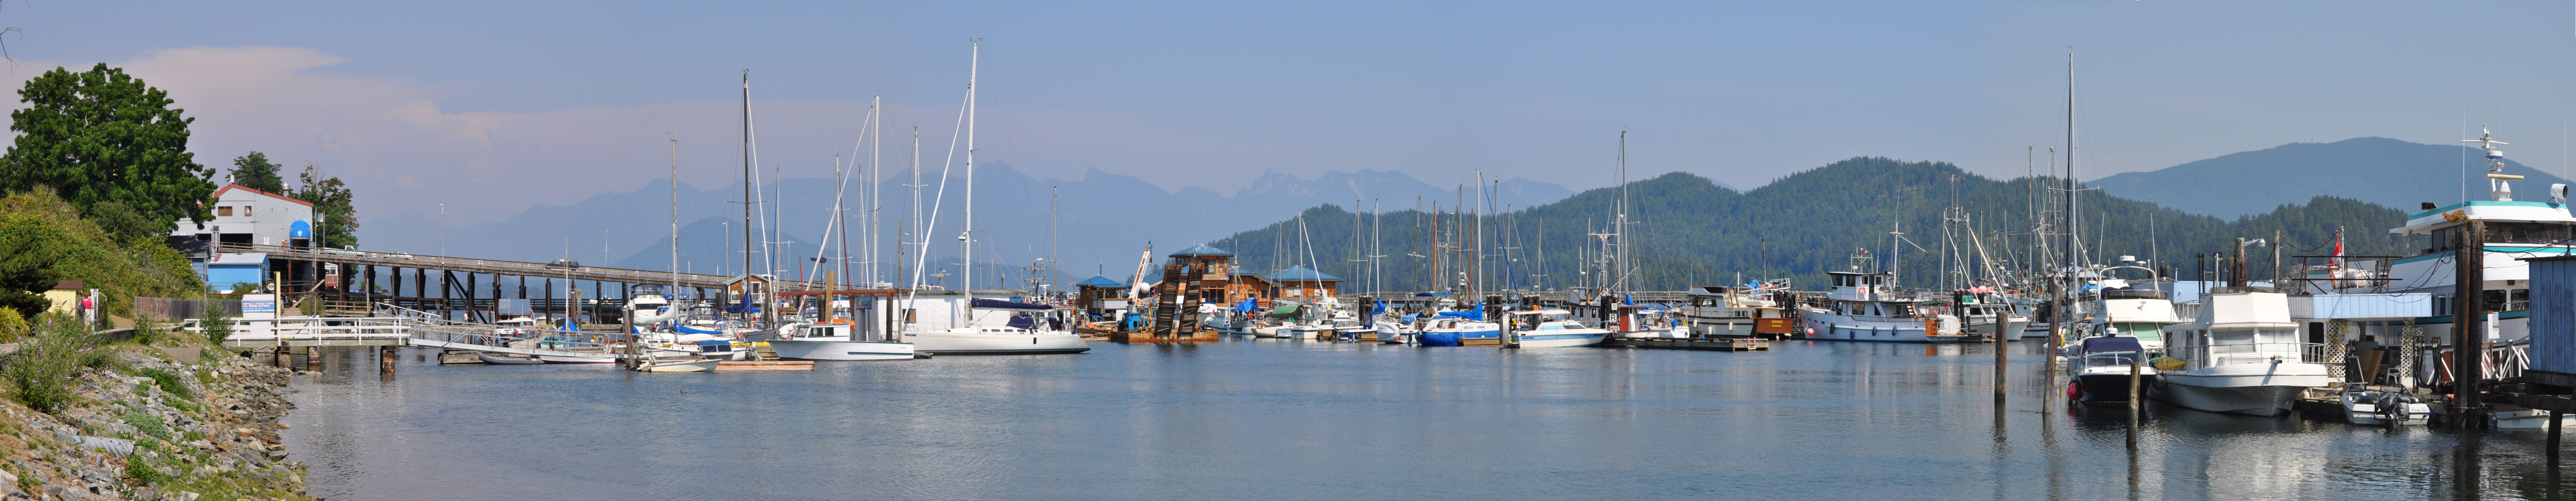 Gibsons Harbour (panoramic view)